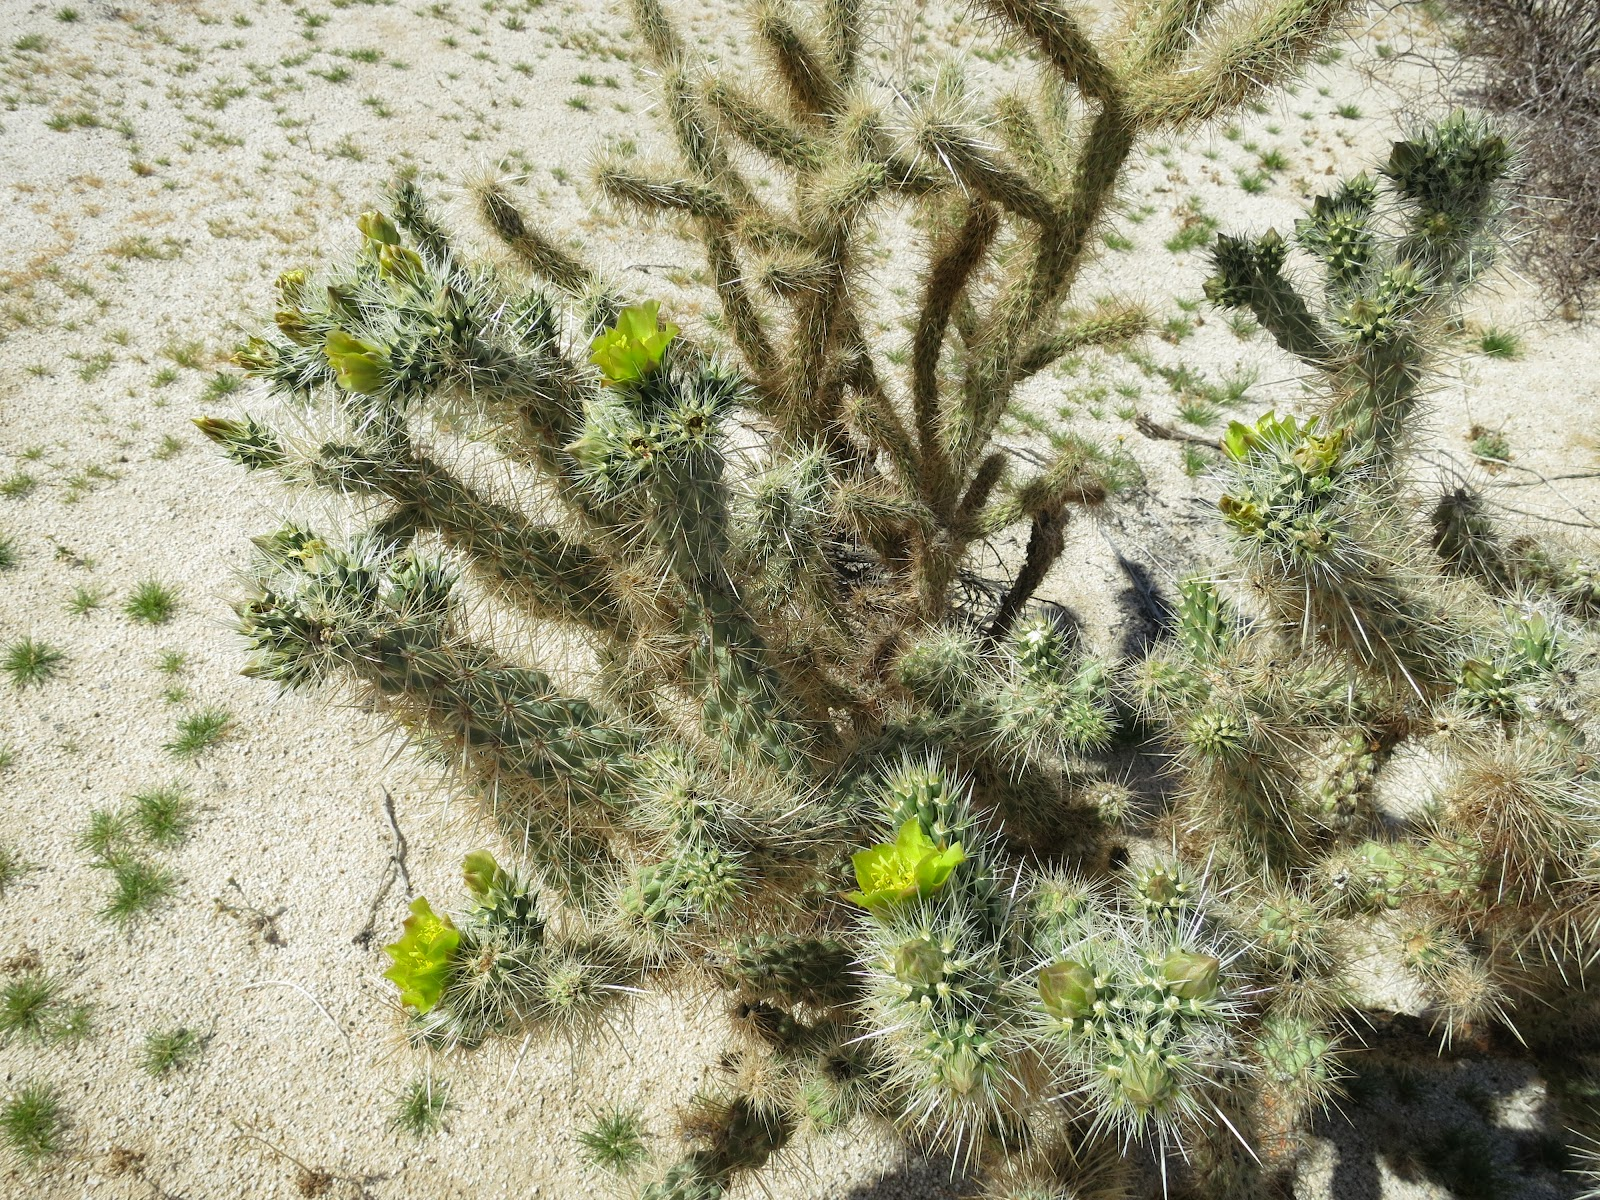 I believe this is called Silver Cholla or possibly Gander's Cholla. Nonetheless it was flowering nicely.